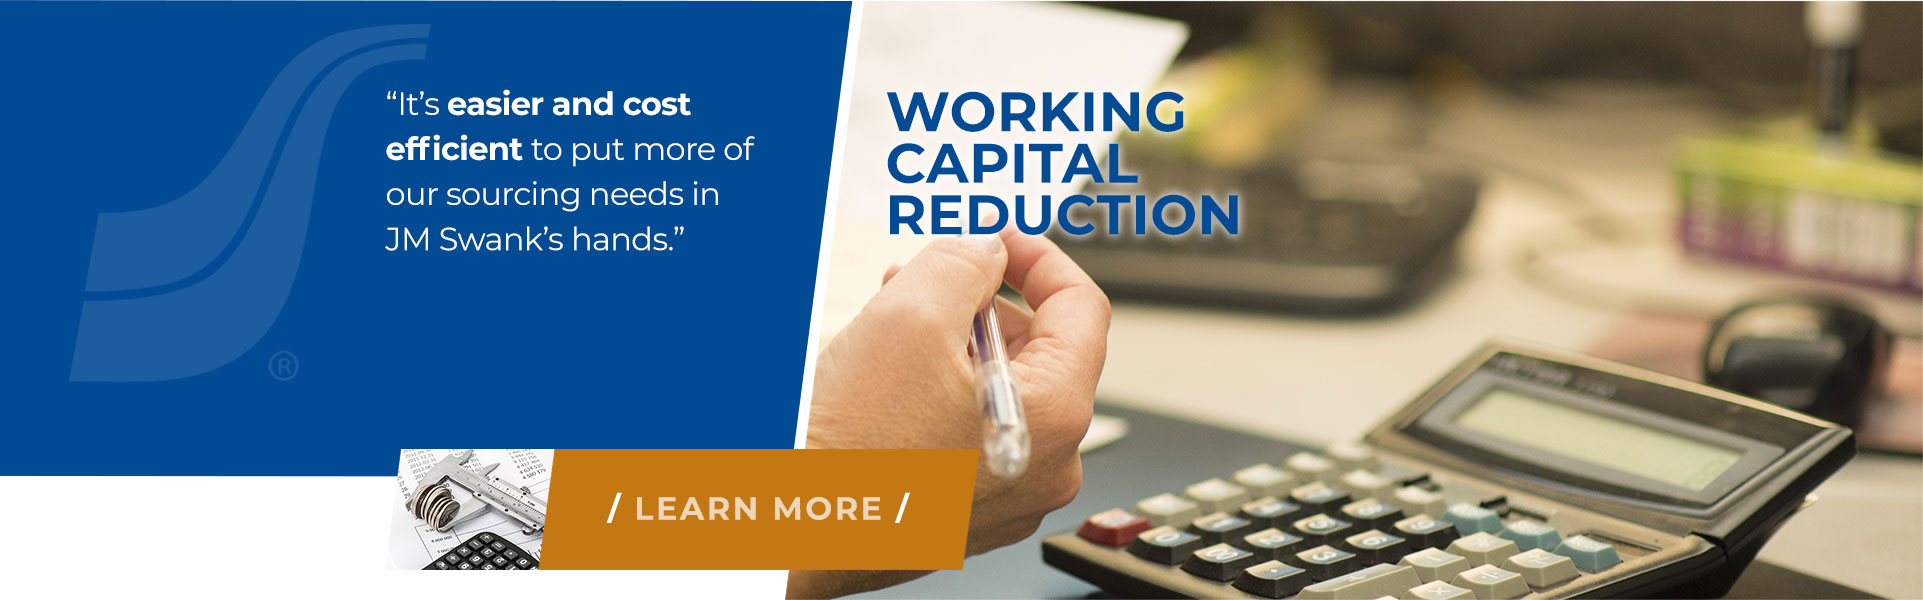 Working Capital Reduction